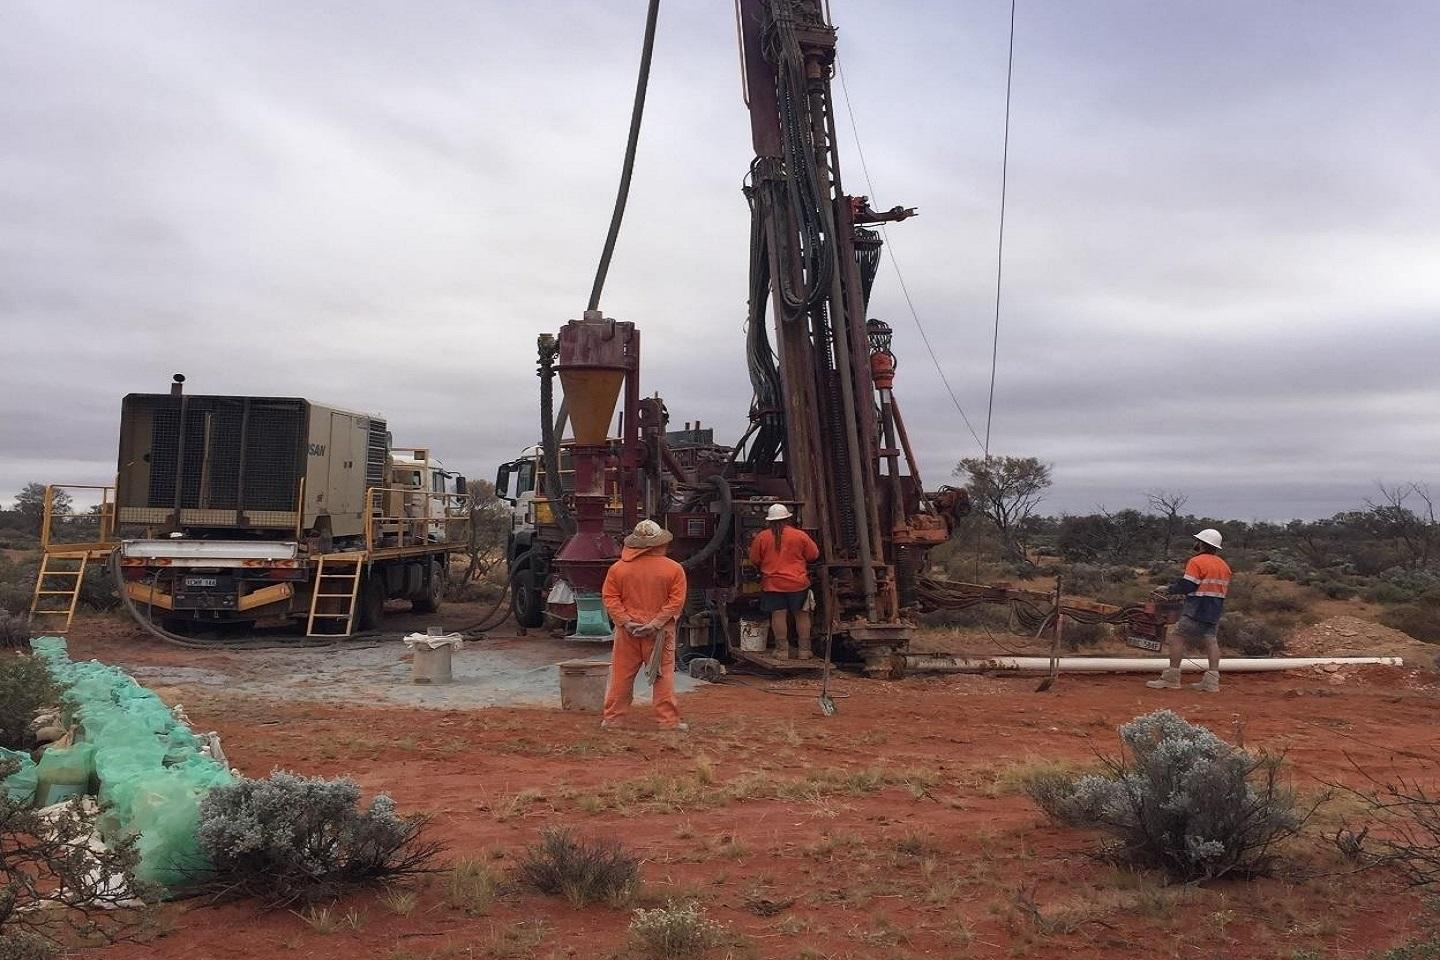 Indiana completes maiden drilling in SA gold hunt